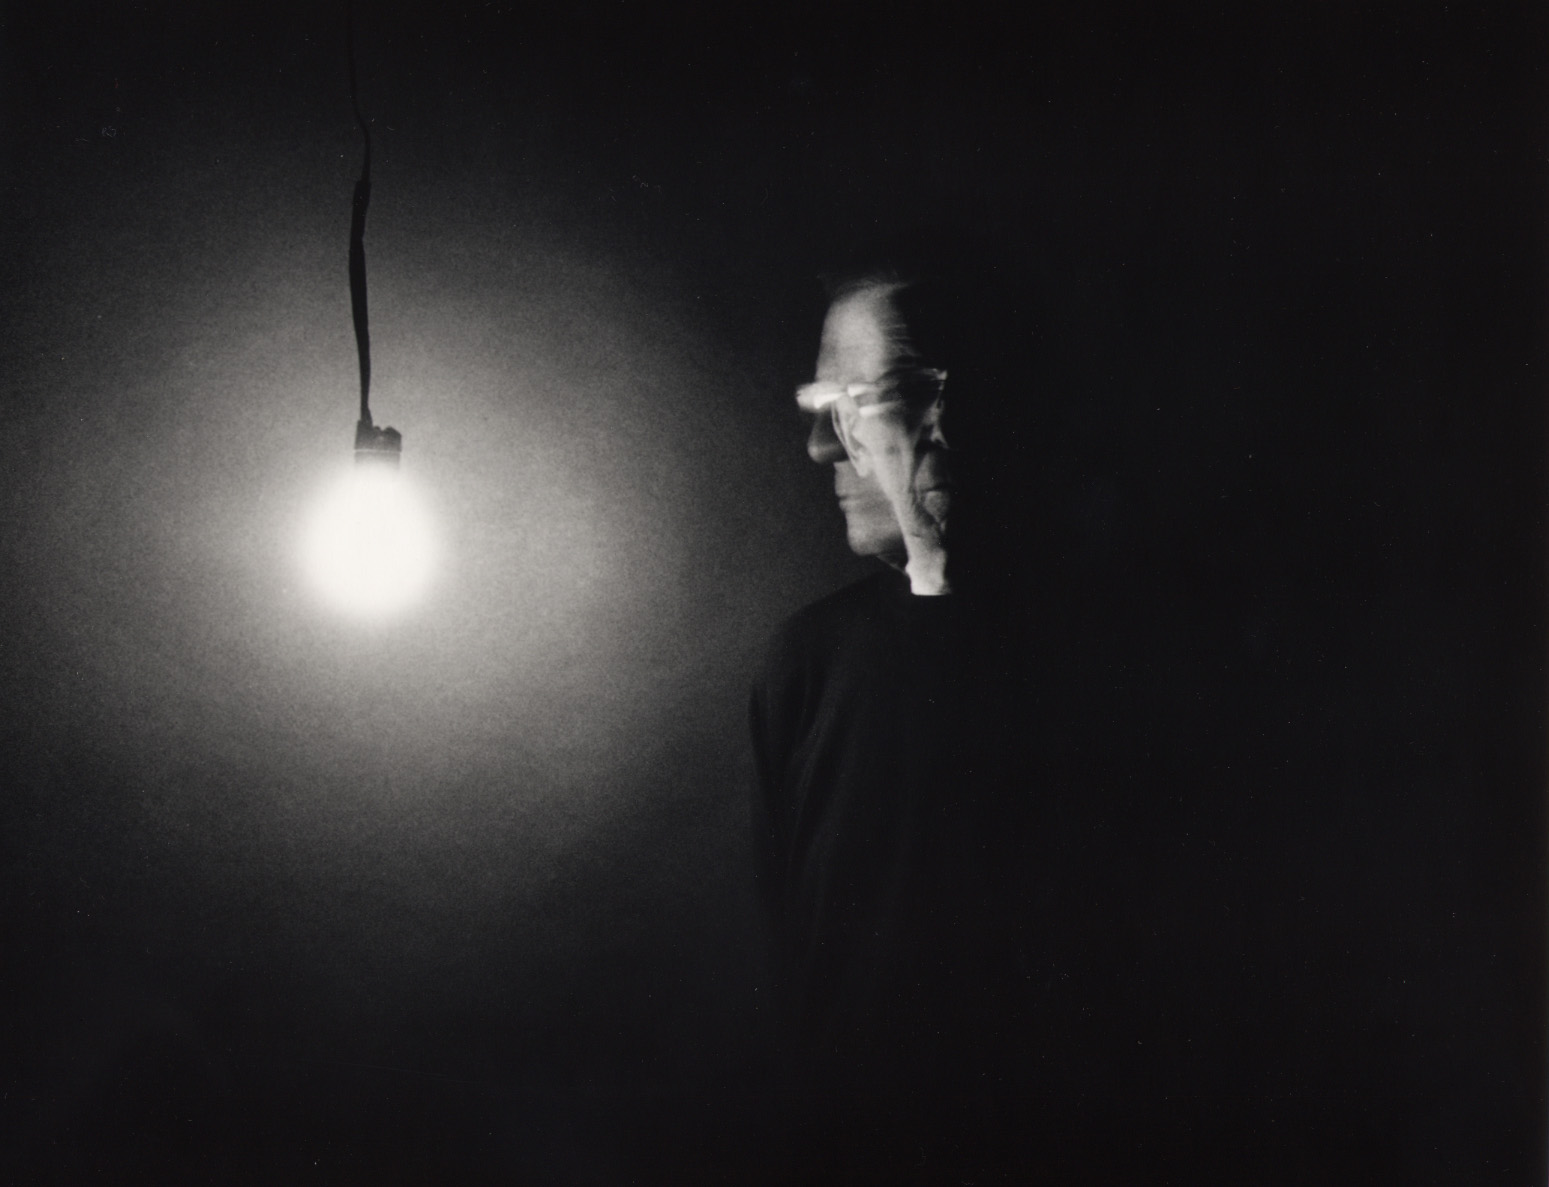 Self Portrait with Bulb , 2003 silver gelatin print 11 x 14 inches; 27.9 x 35.6 centimeters